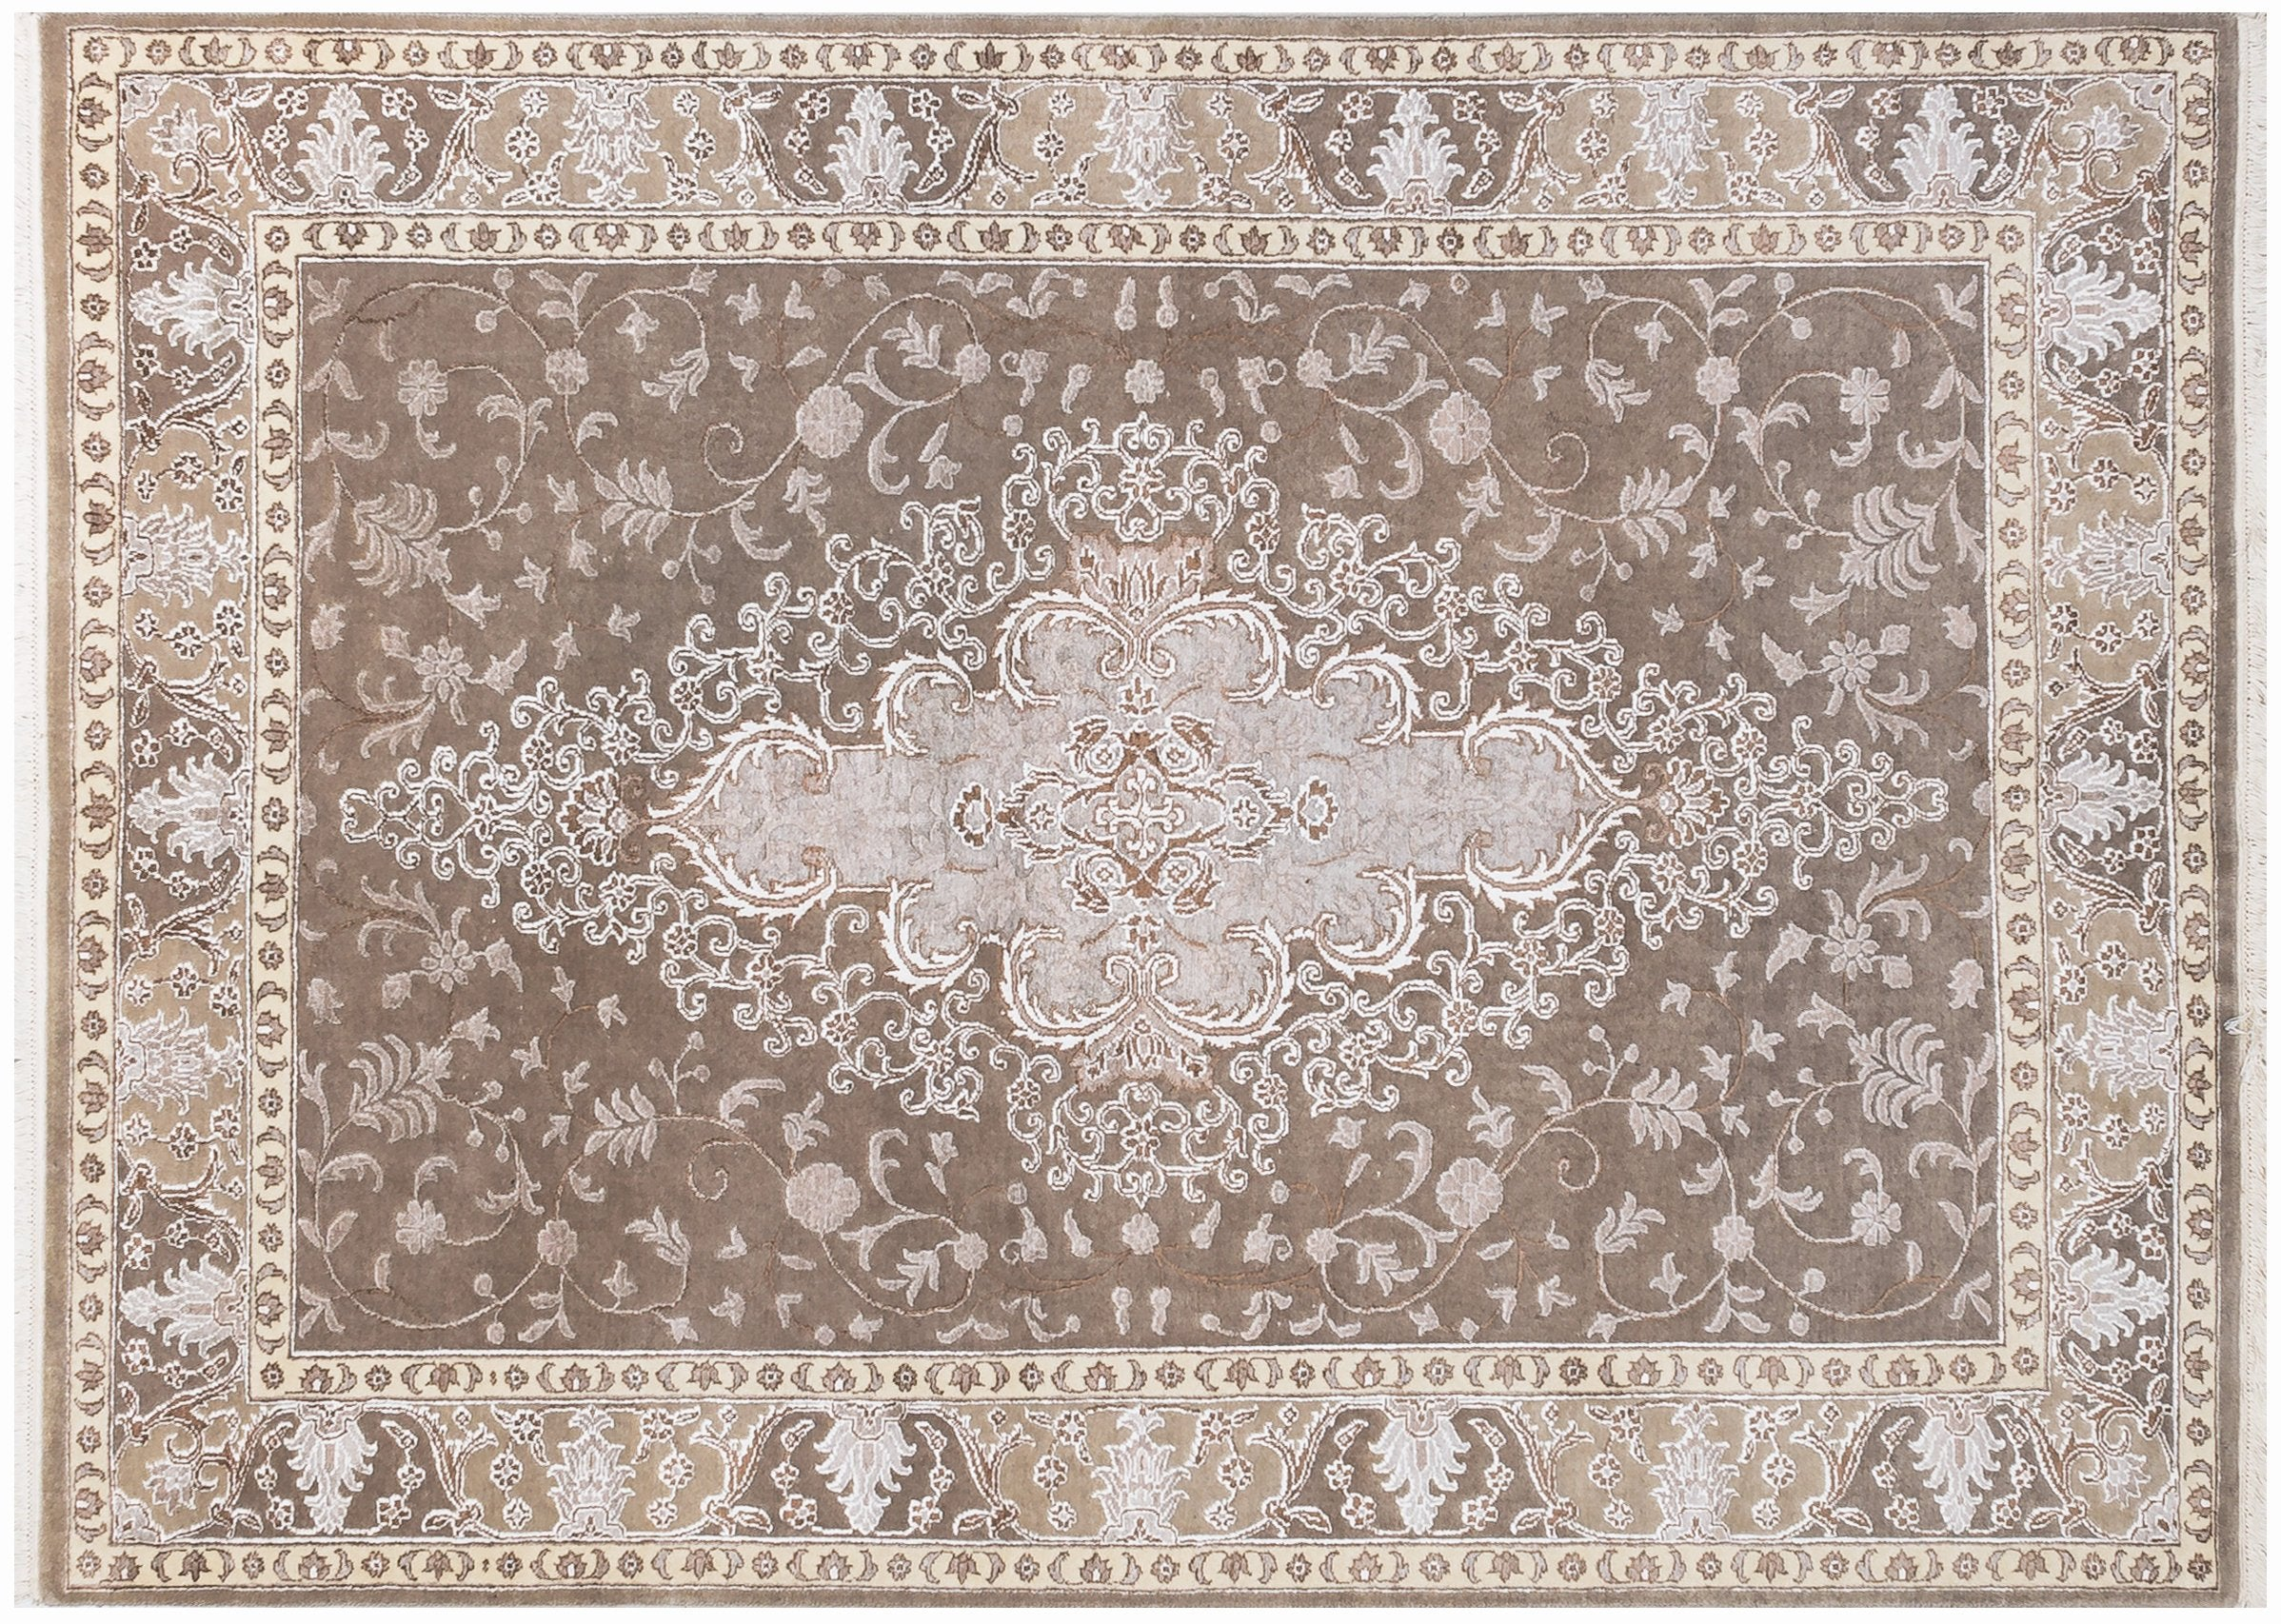 "Persian Floral Bohemian rug,Christmas Handmade Rug , Wool Kitchen Decor Area Rug, Antique design Oriental persian Rug  5'4"" X 7'8"" R8428"